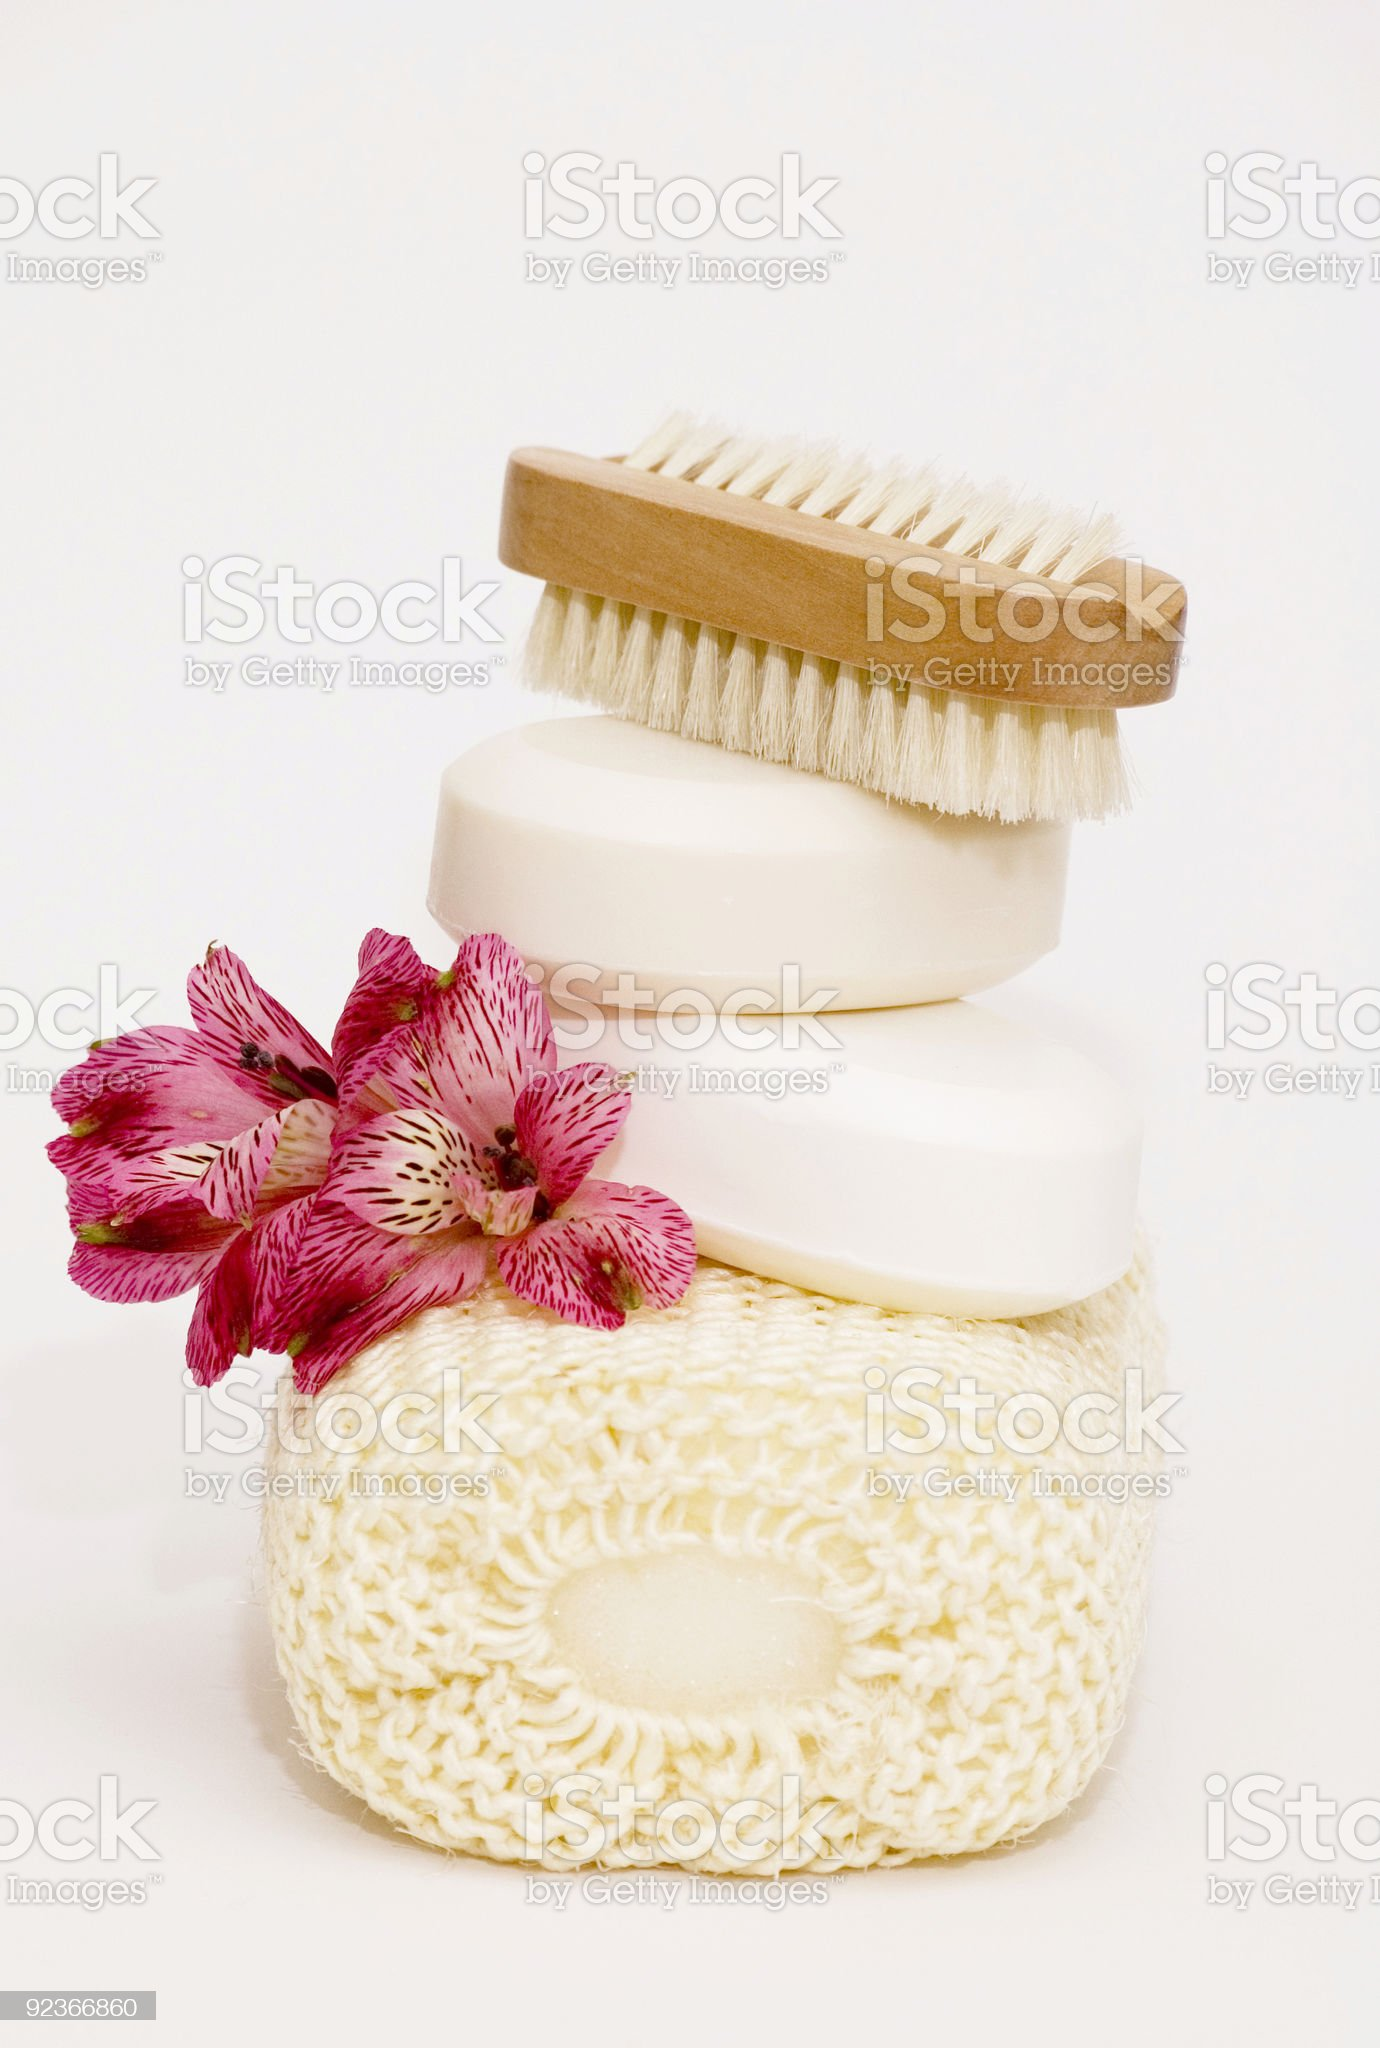 Spa Beauty Therapy royalty-free stock photo